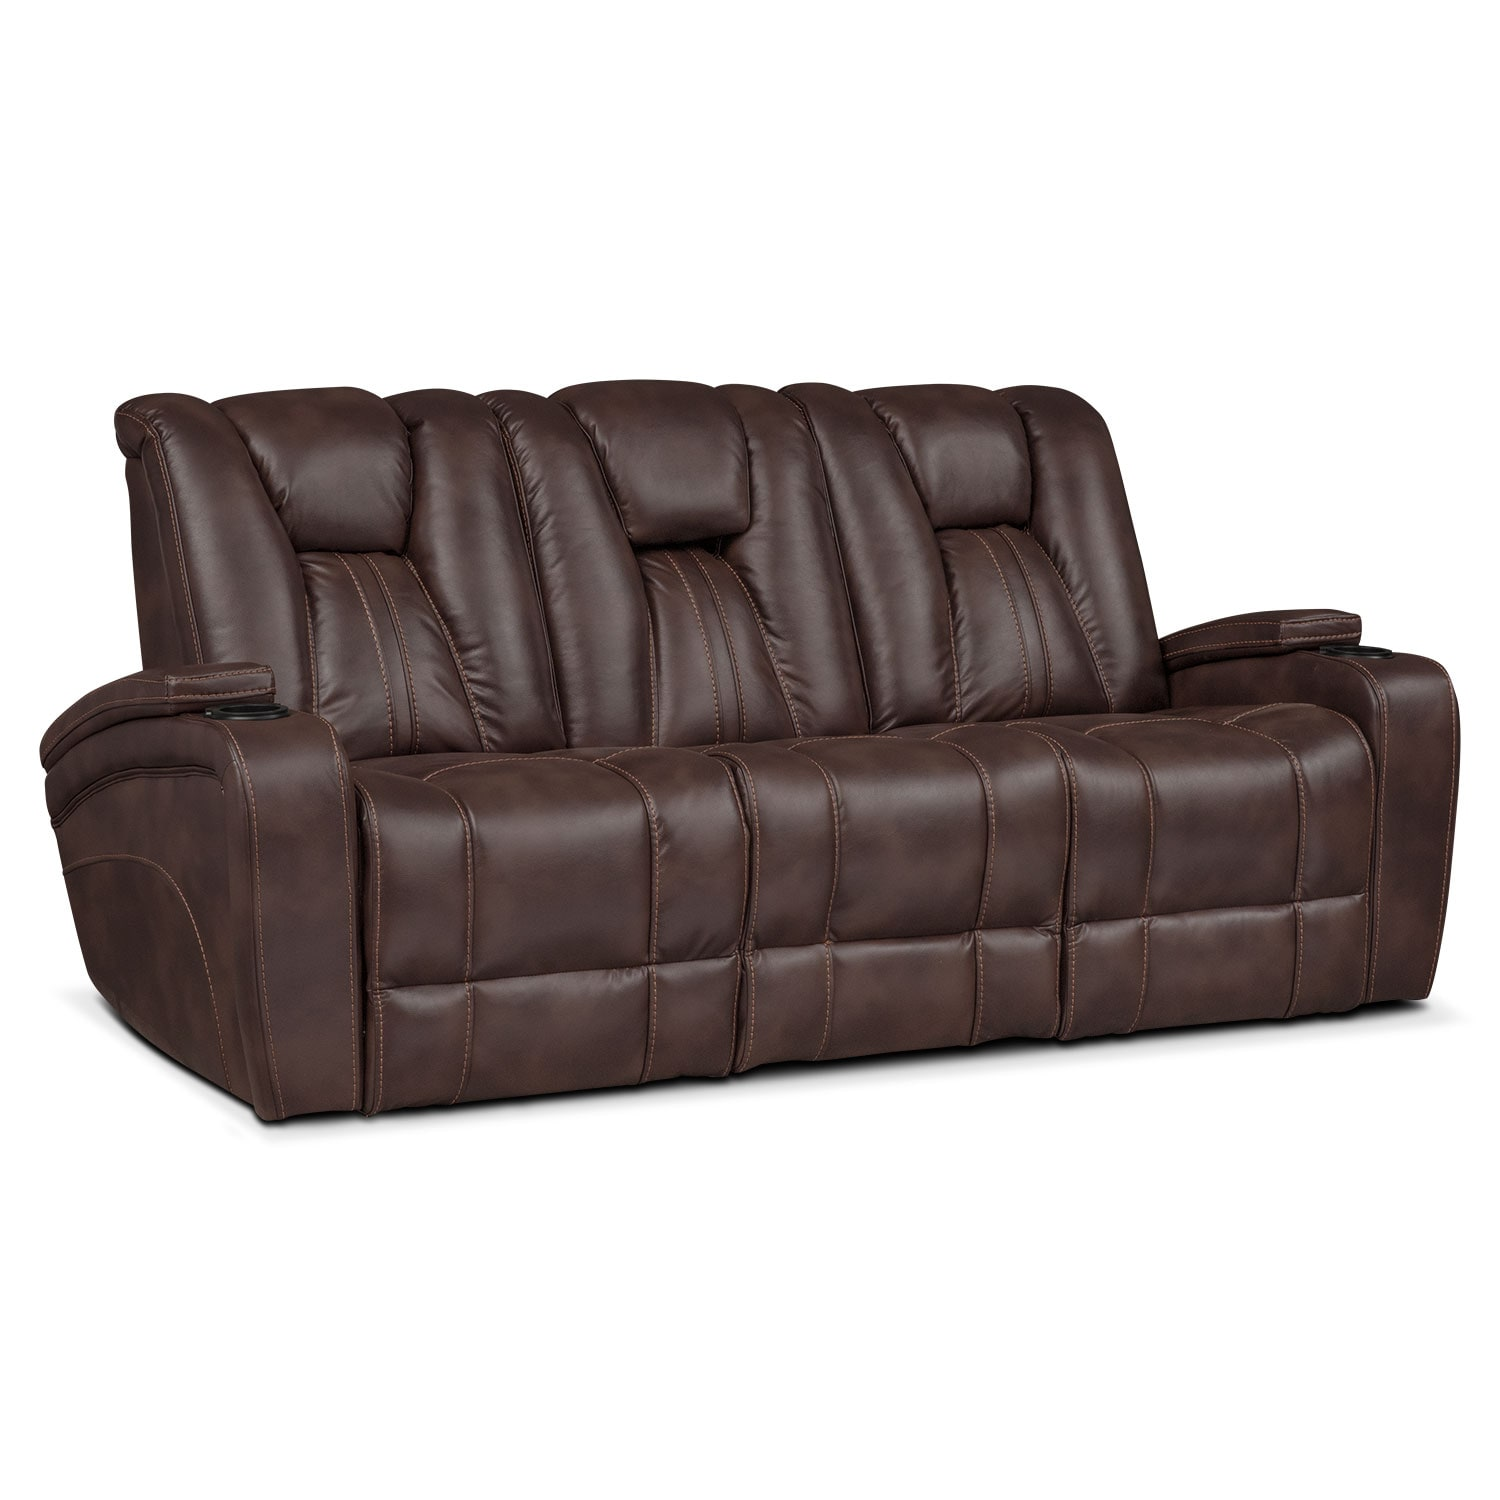 Pulsar Dual Power Reclining Sofa and Dual Power Reclining Loveseat Set - Brown by One80  sc 1 st  Value City Furniture : loveseat power recliner - islam-shia.org